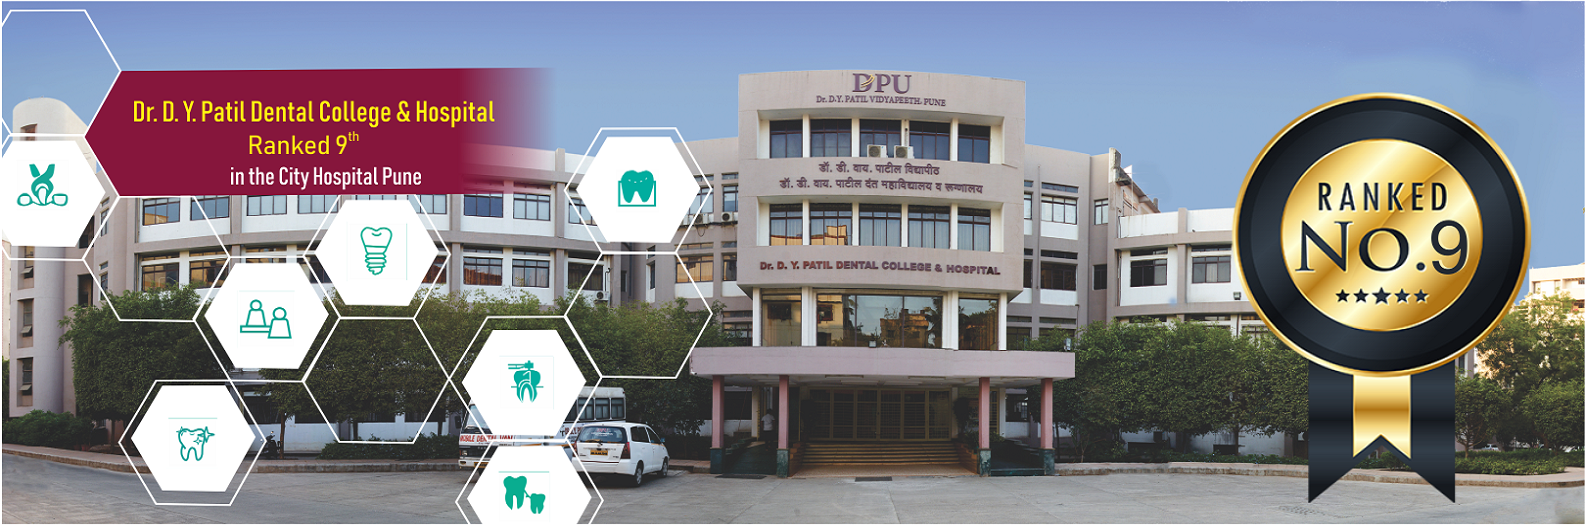 Dr  D  Y  Patil Dental College & Hospital |